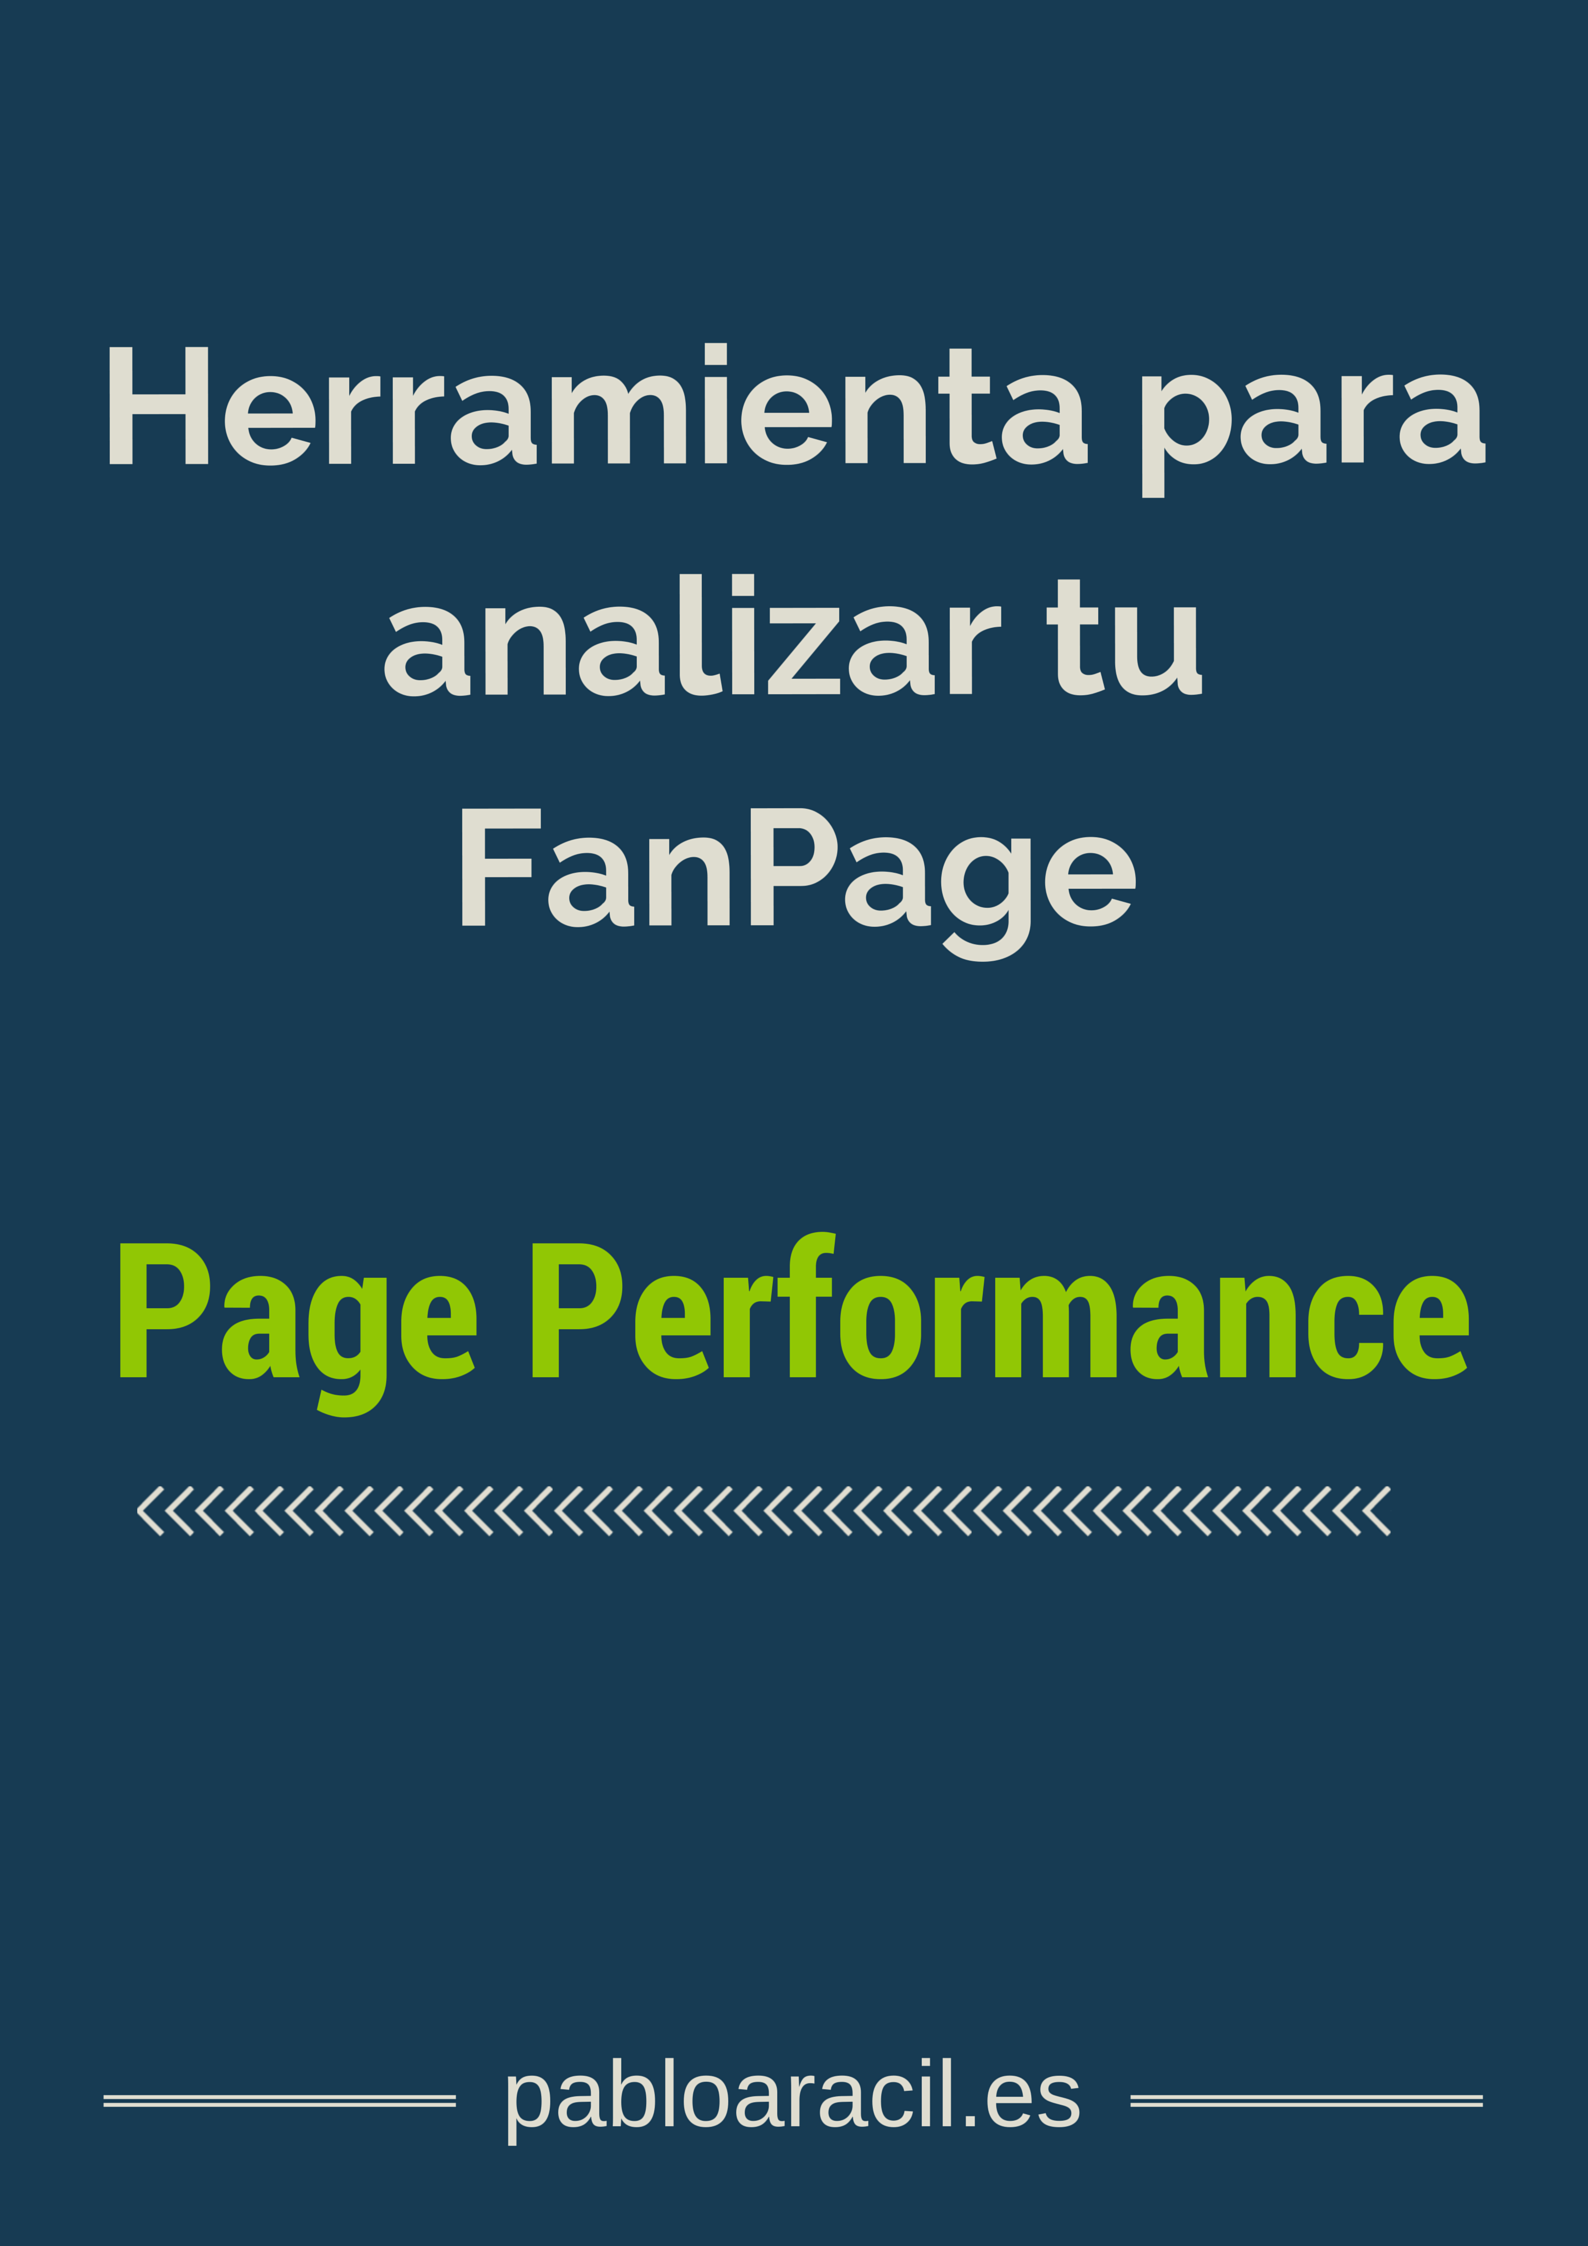 Page Performance